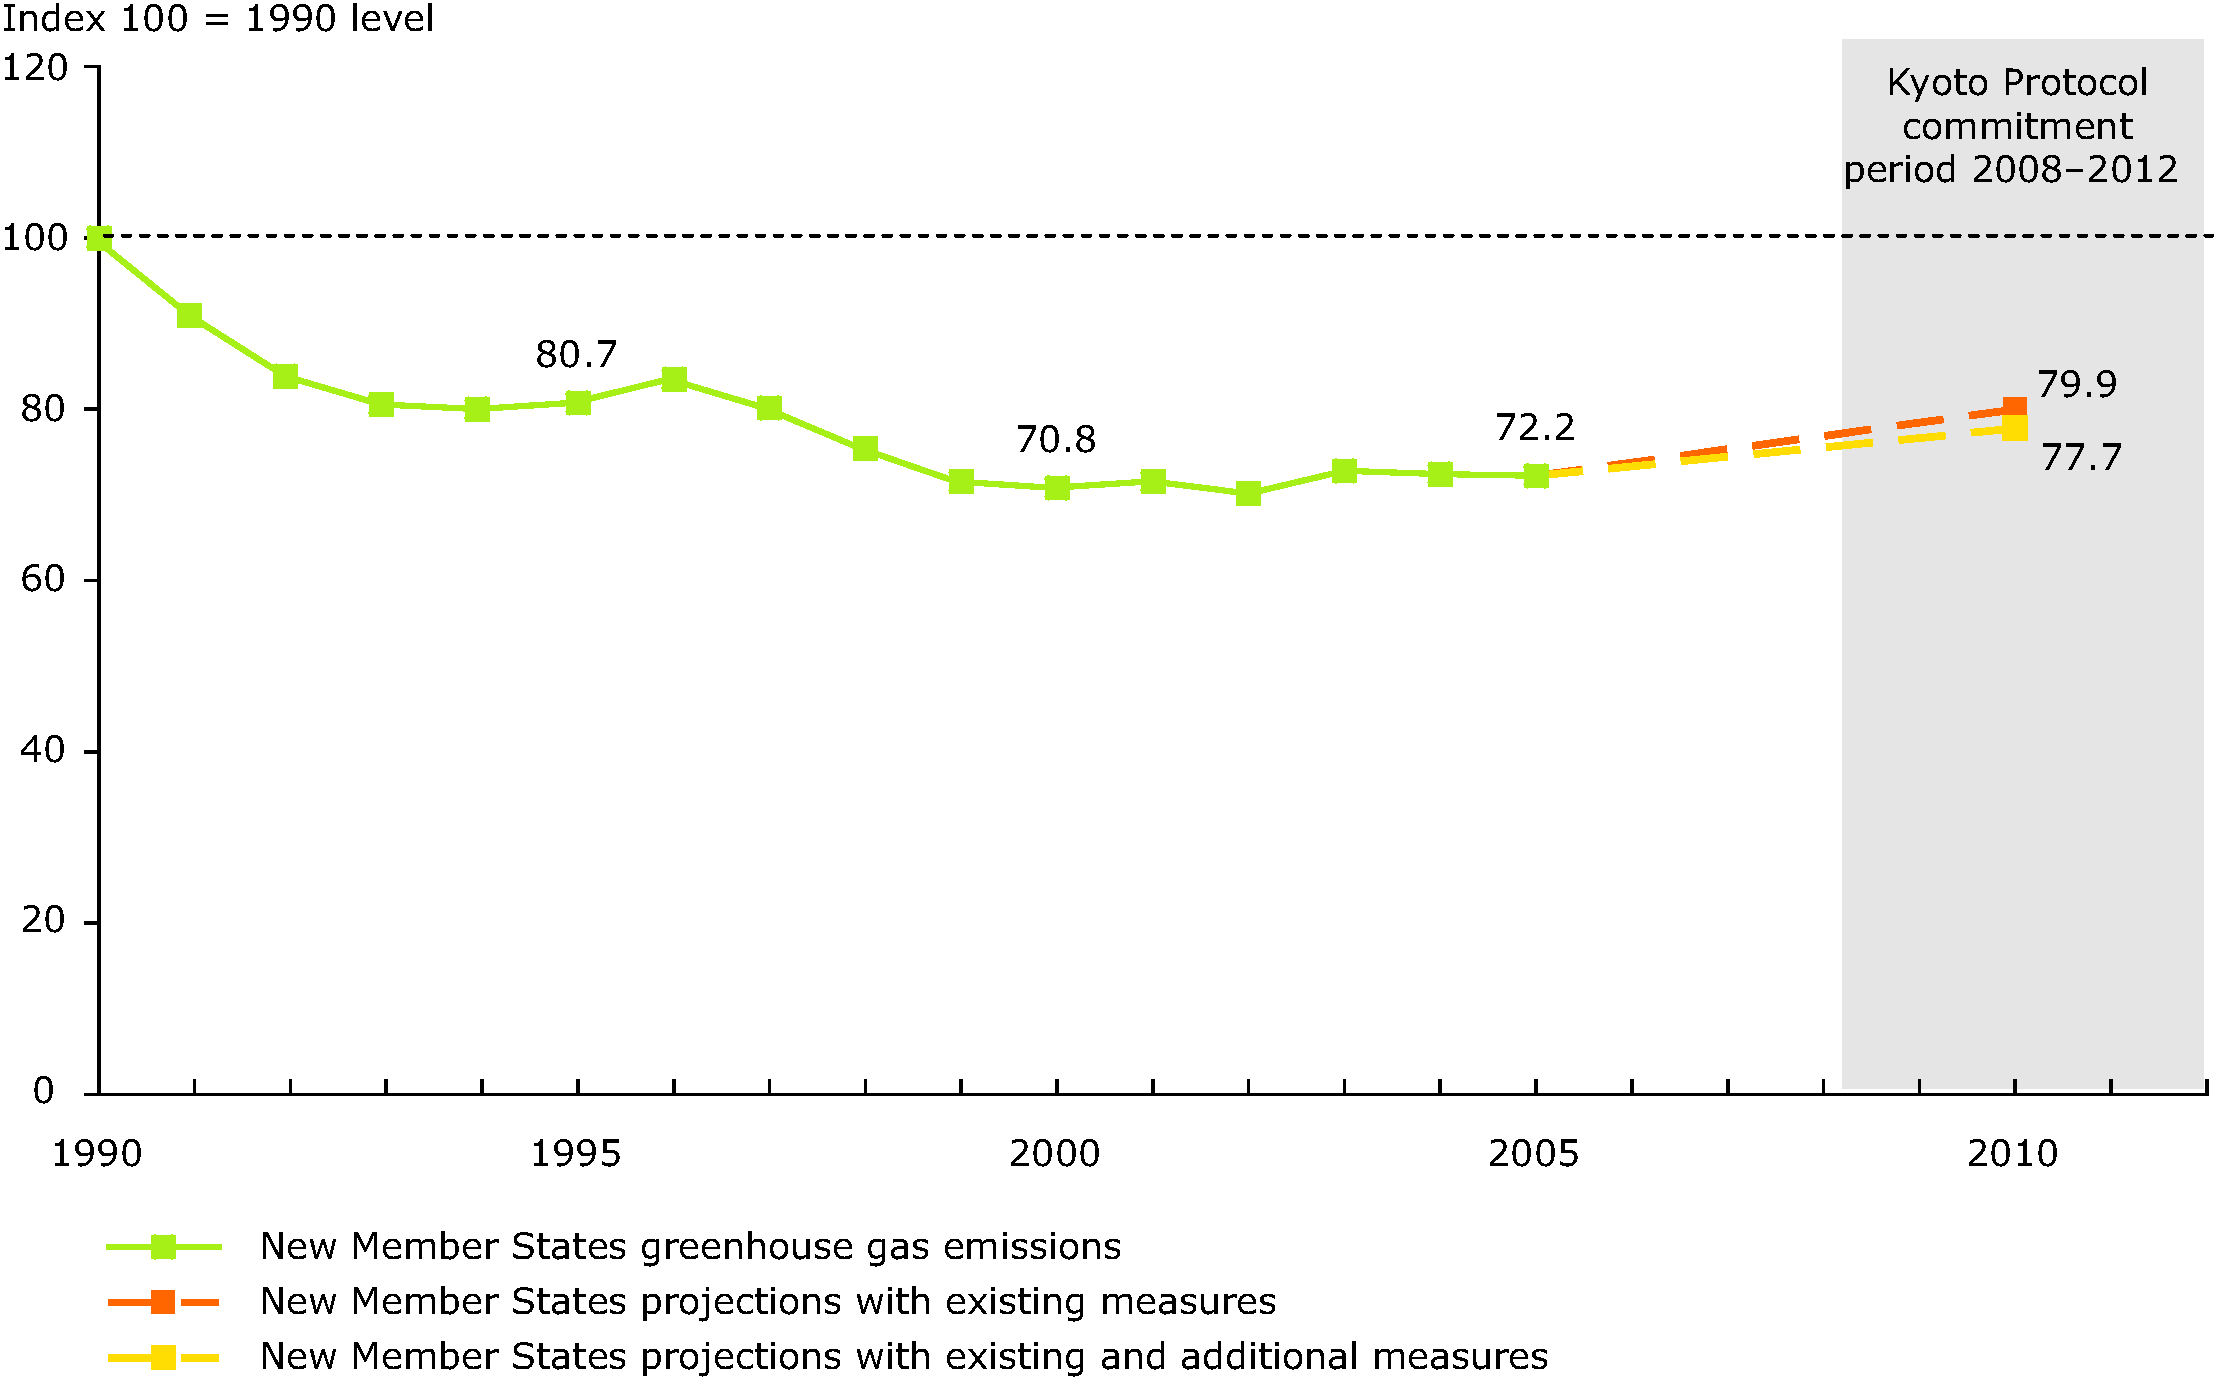 Past and projected greenhouse gas emissions aggregated for the 12 new Member States